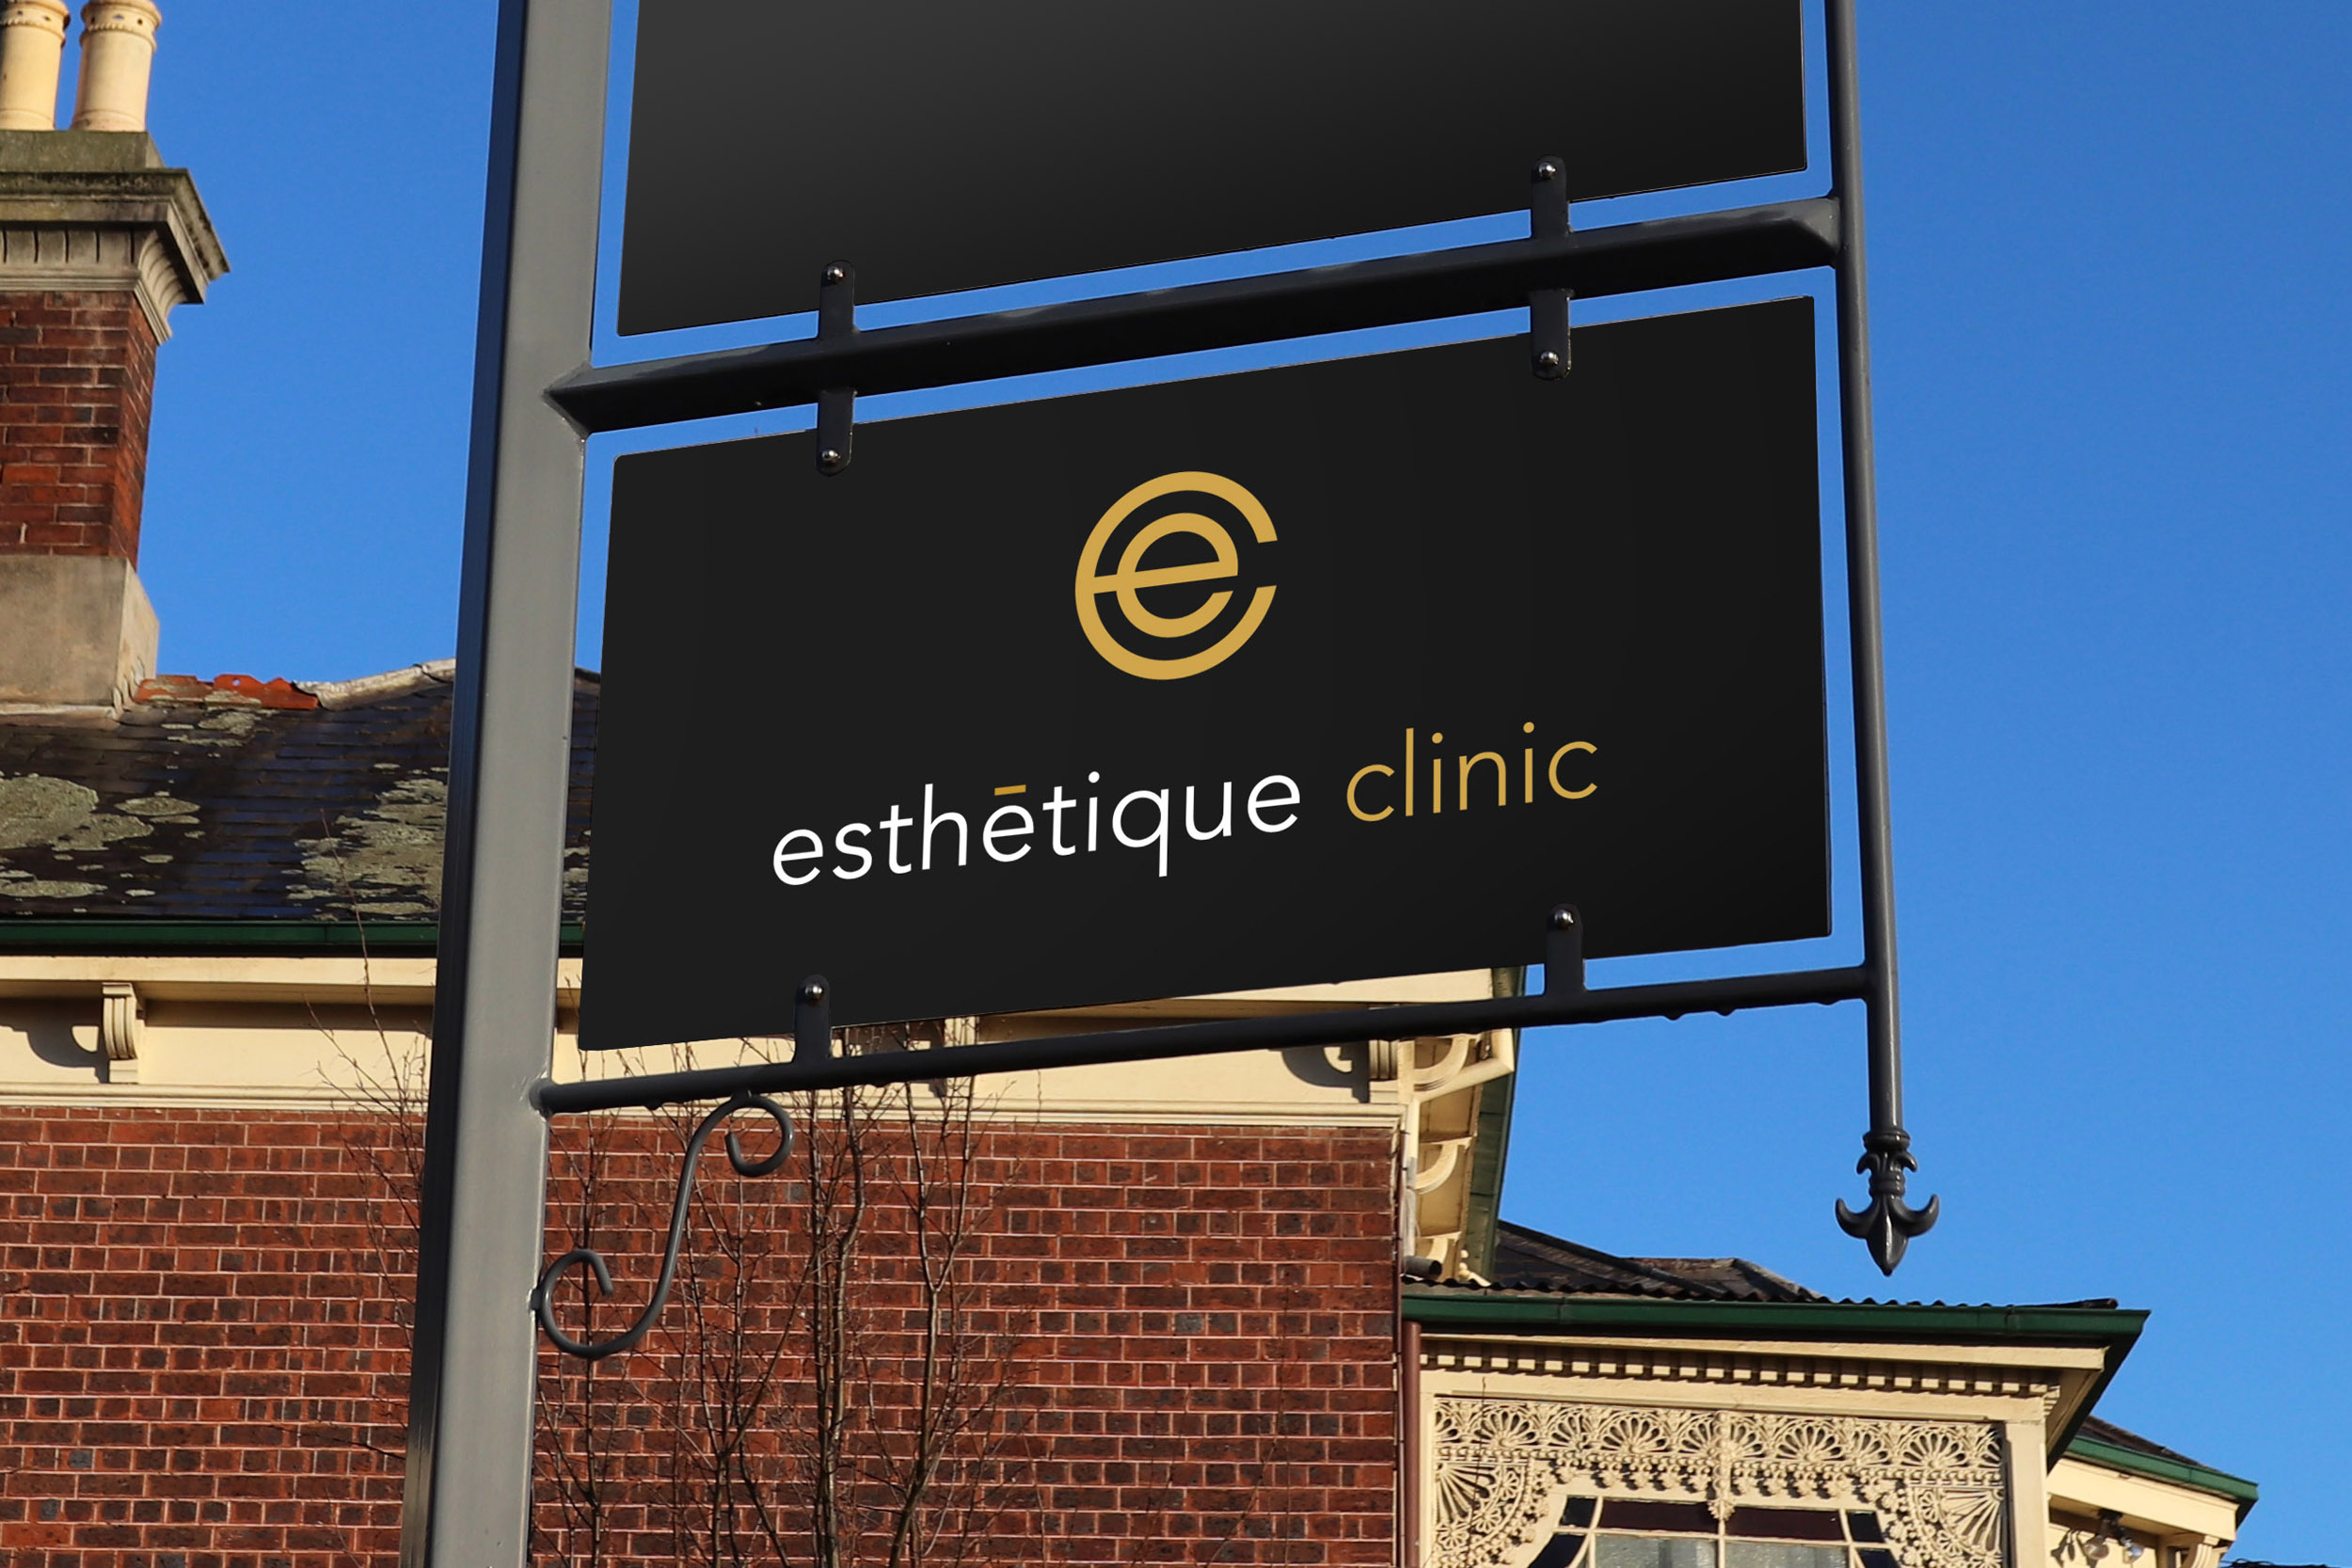 esthetique clinic logo sign.jpg